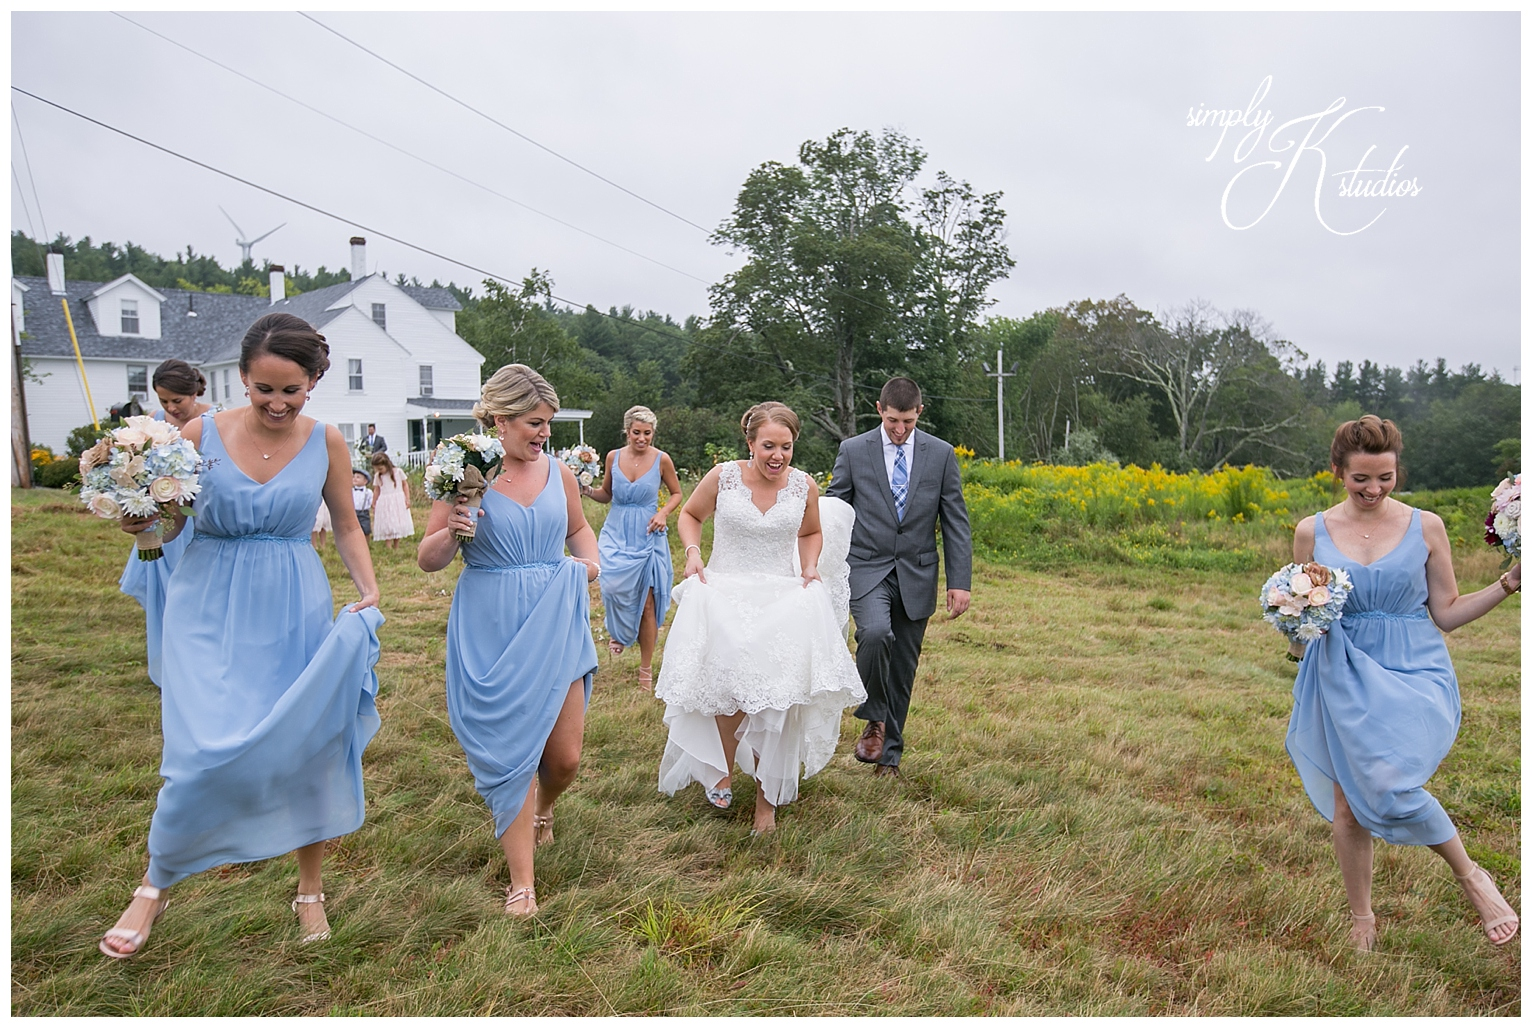 Harrington Farm Weddings.jpg